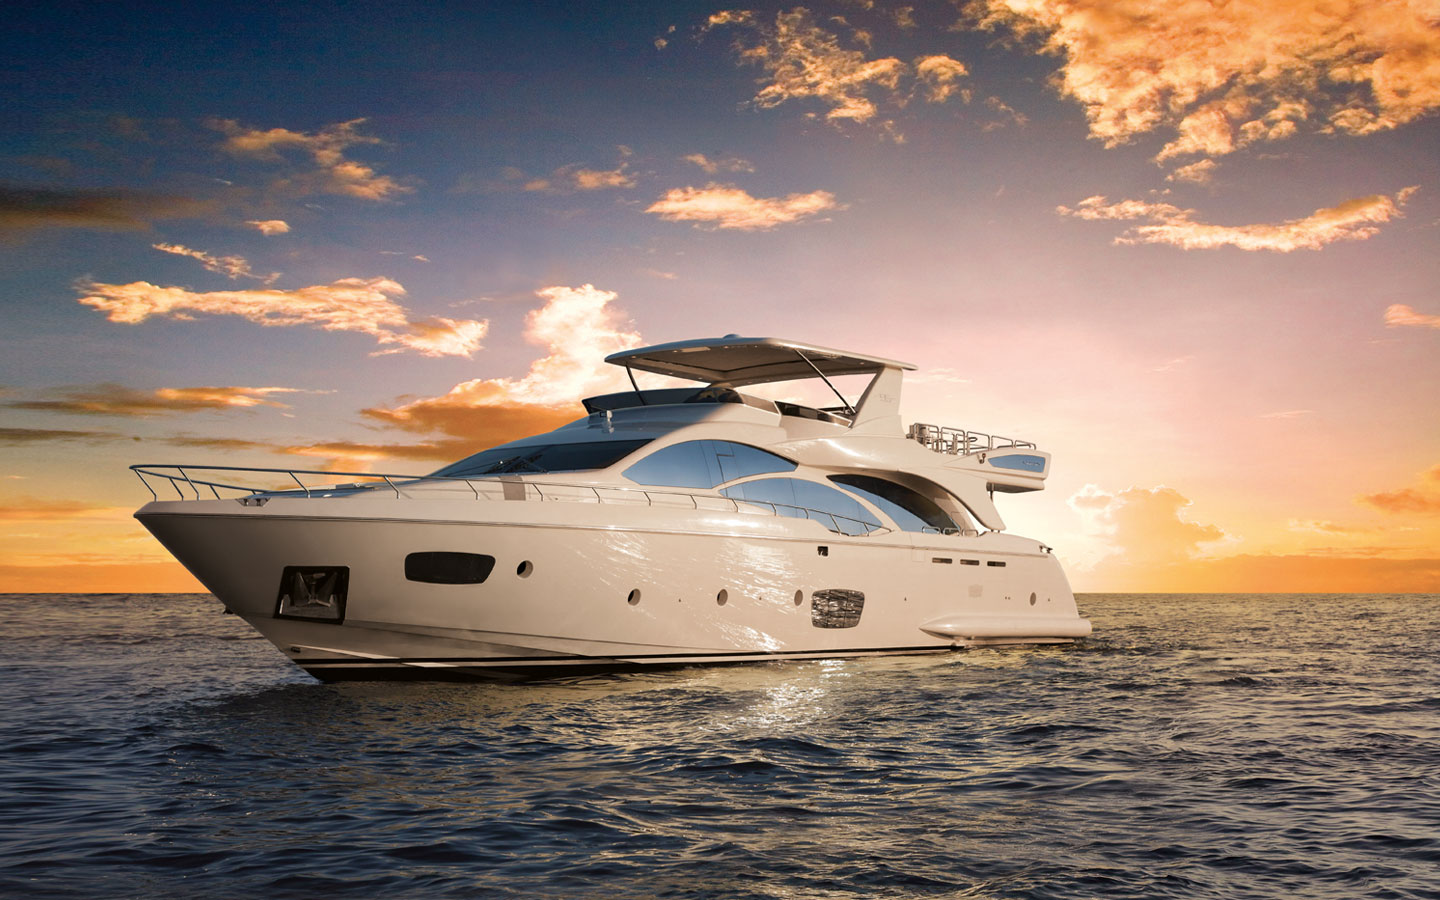 This image is featured as part of the article Azimut-Benetti Yachts sees 20 ...